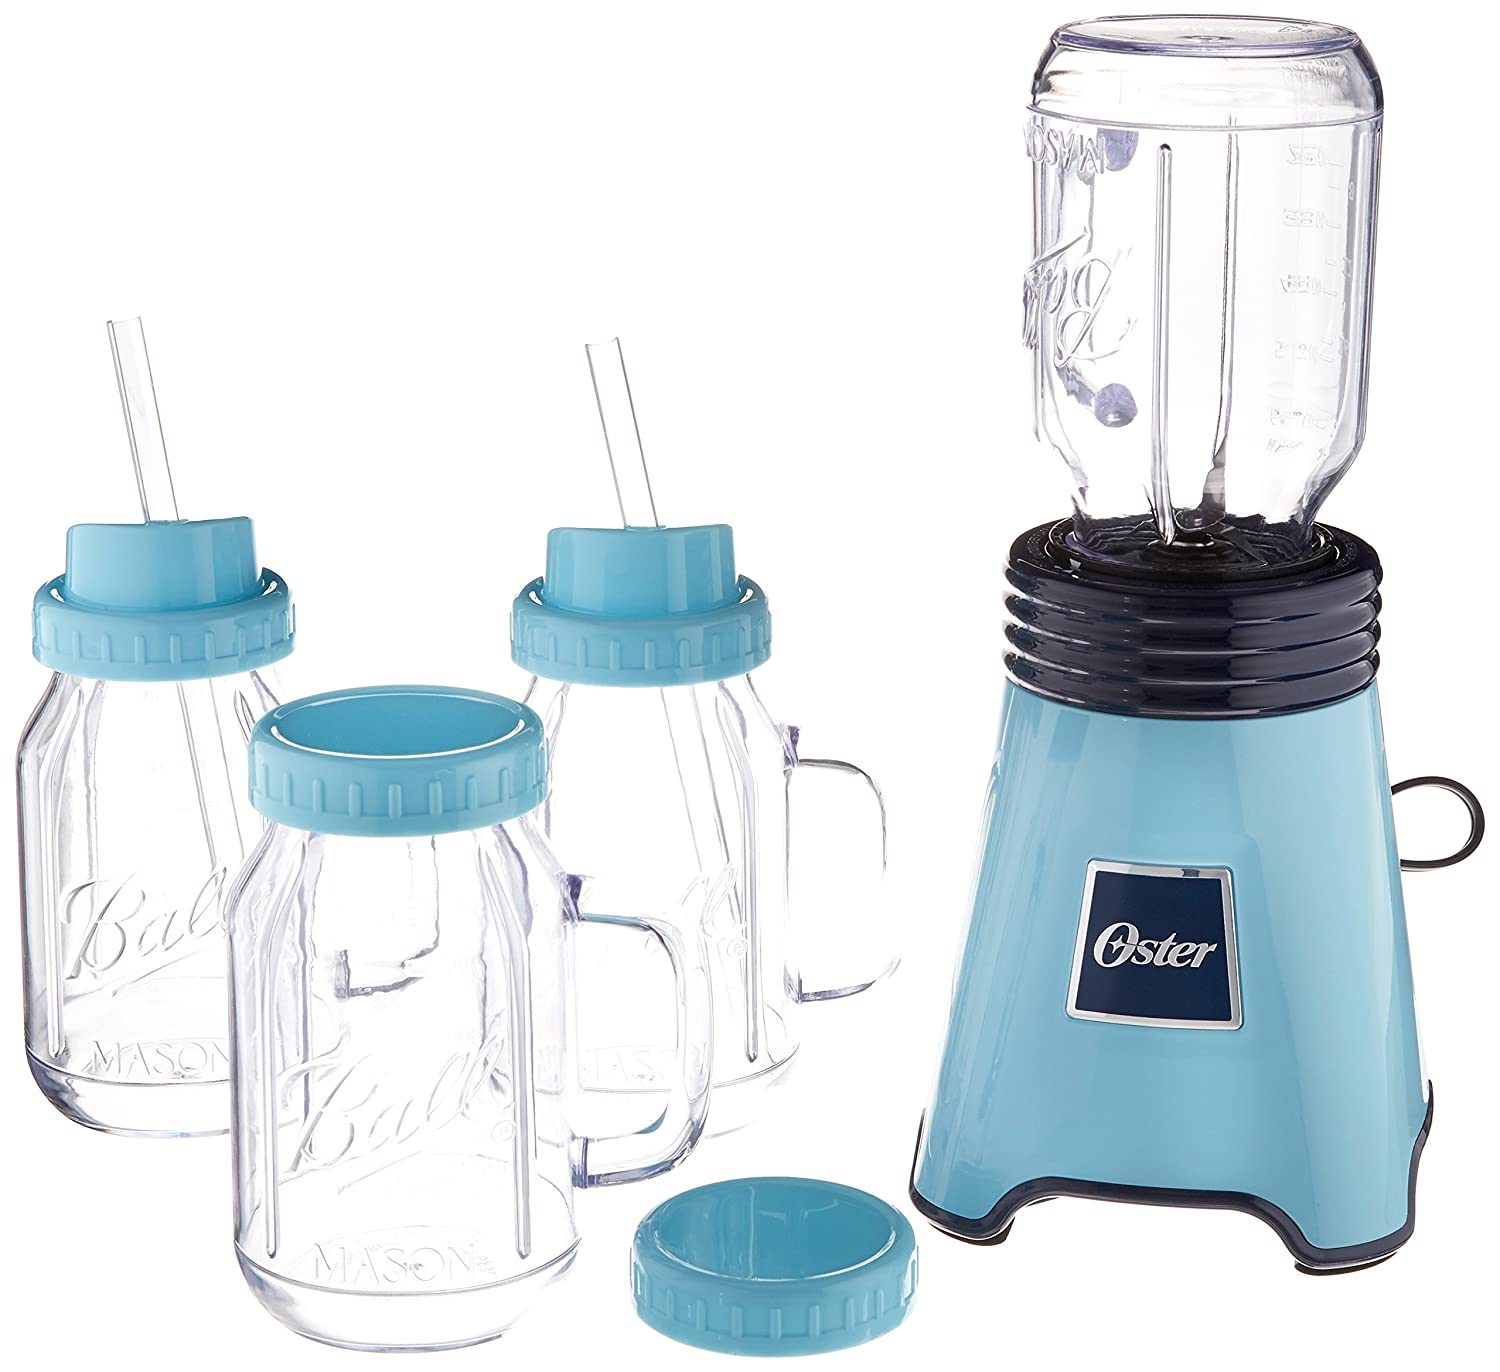 Oster ball personal blender blue with bonus blending cup for Kitchen perfected blender